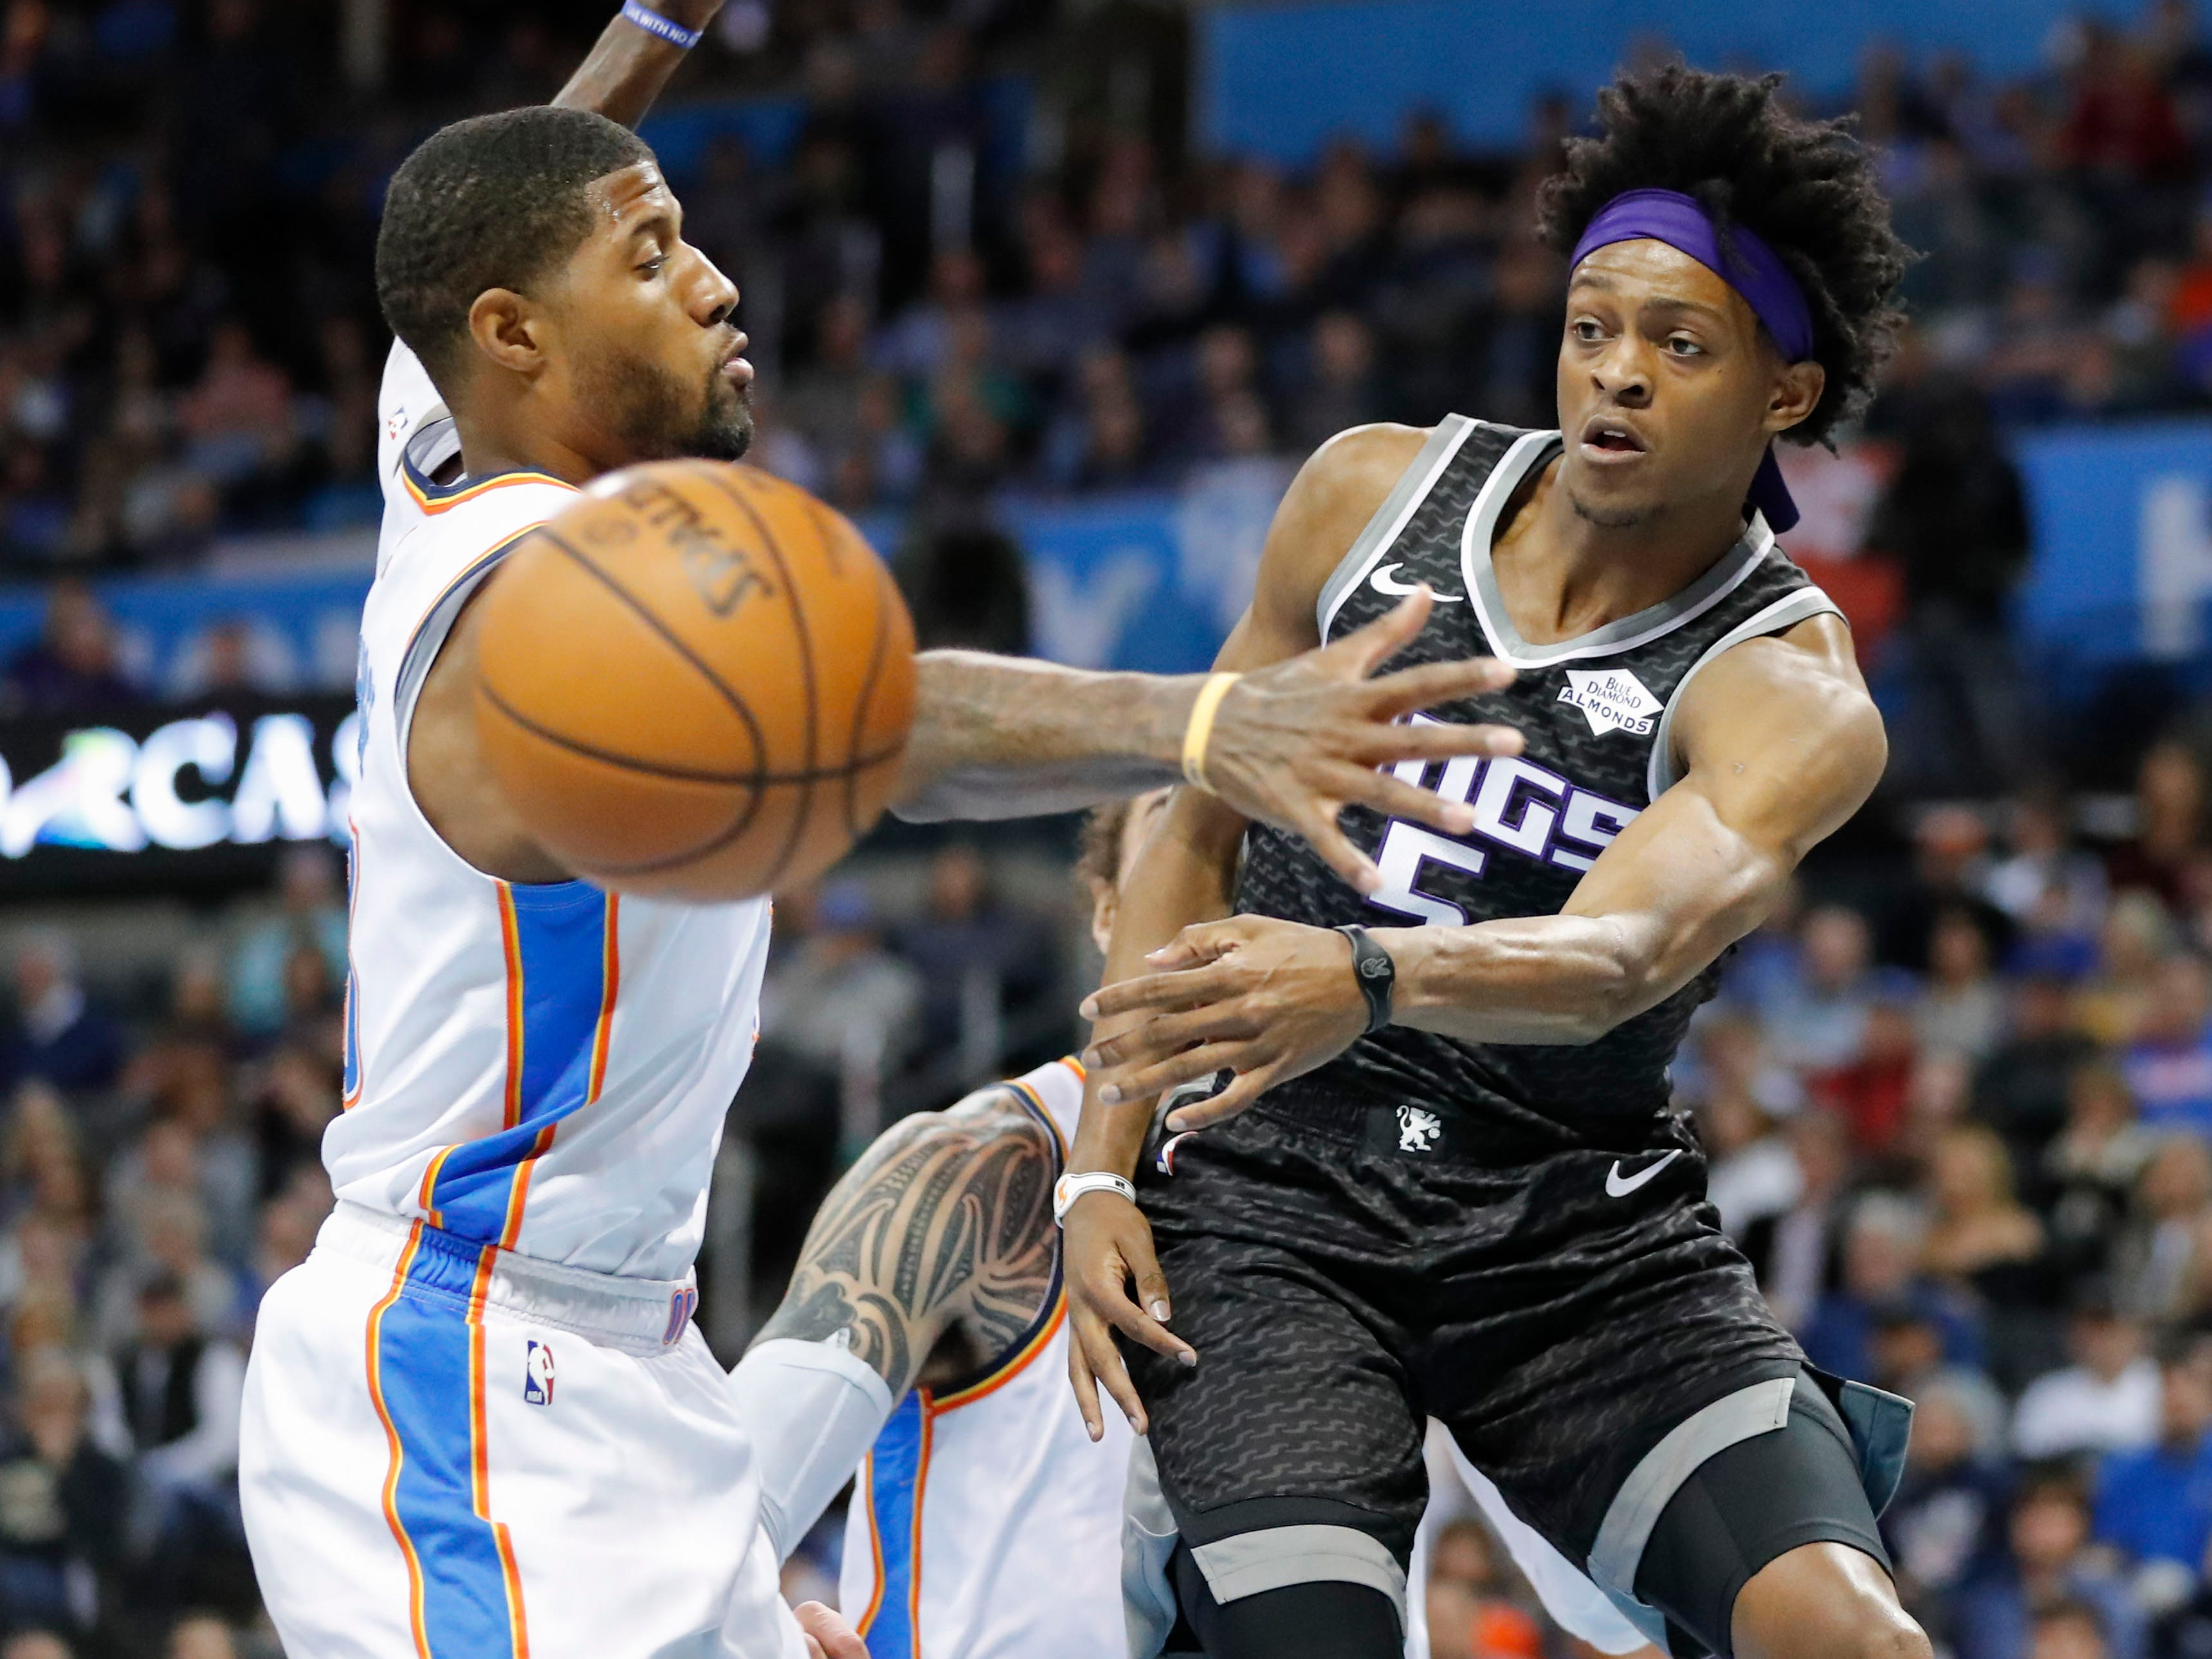 Feb. 23: Kings guard De'Aaron Fox (5) passes around Thunder defender Paul George (13) during the first half in Oklahoma City.